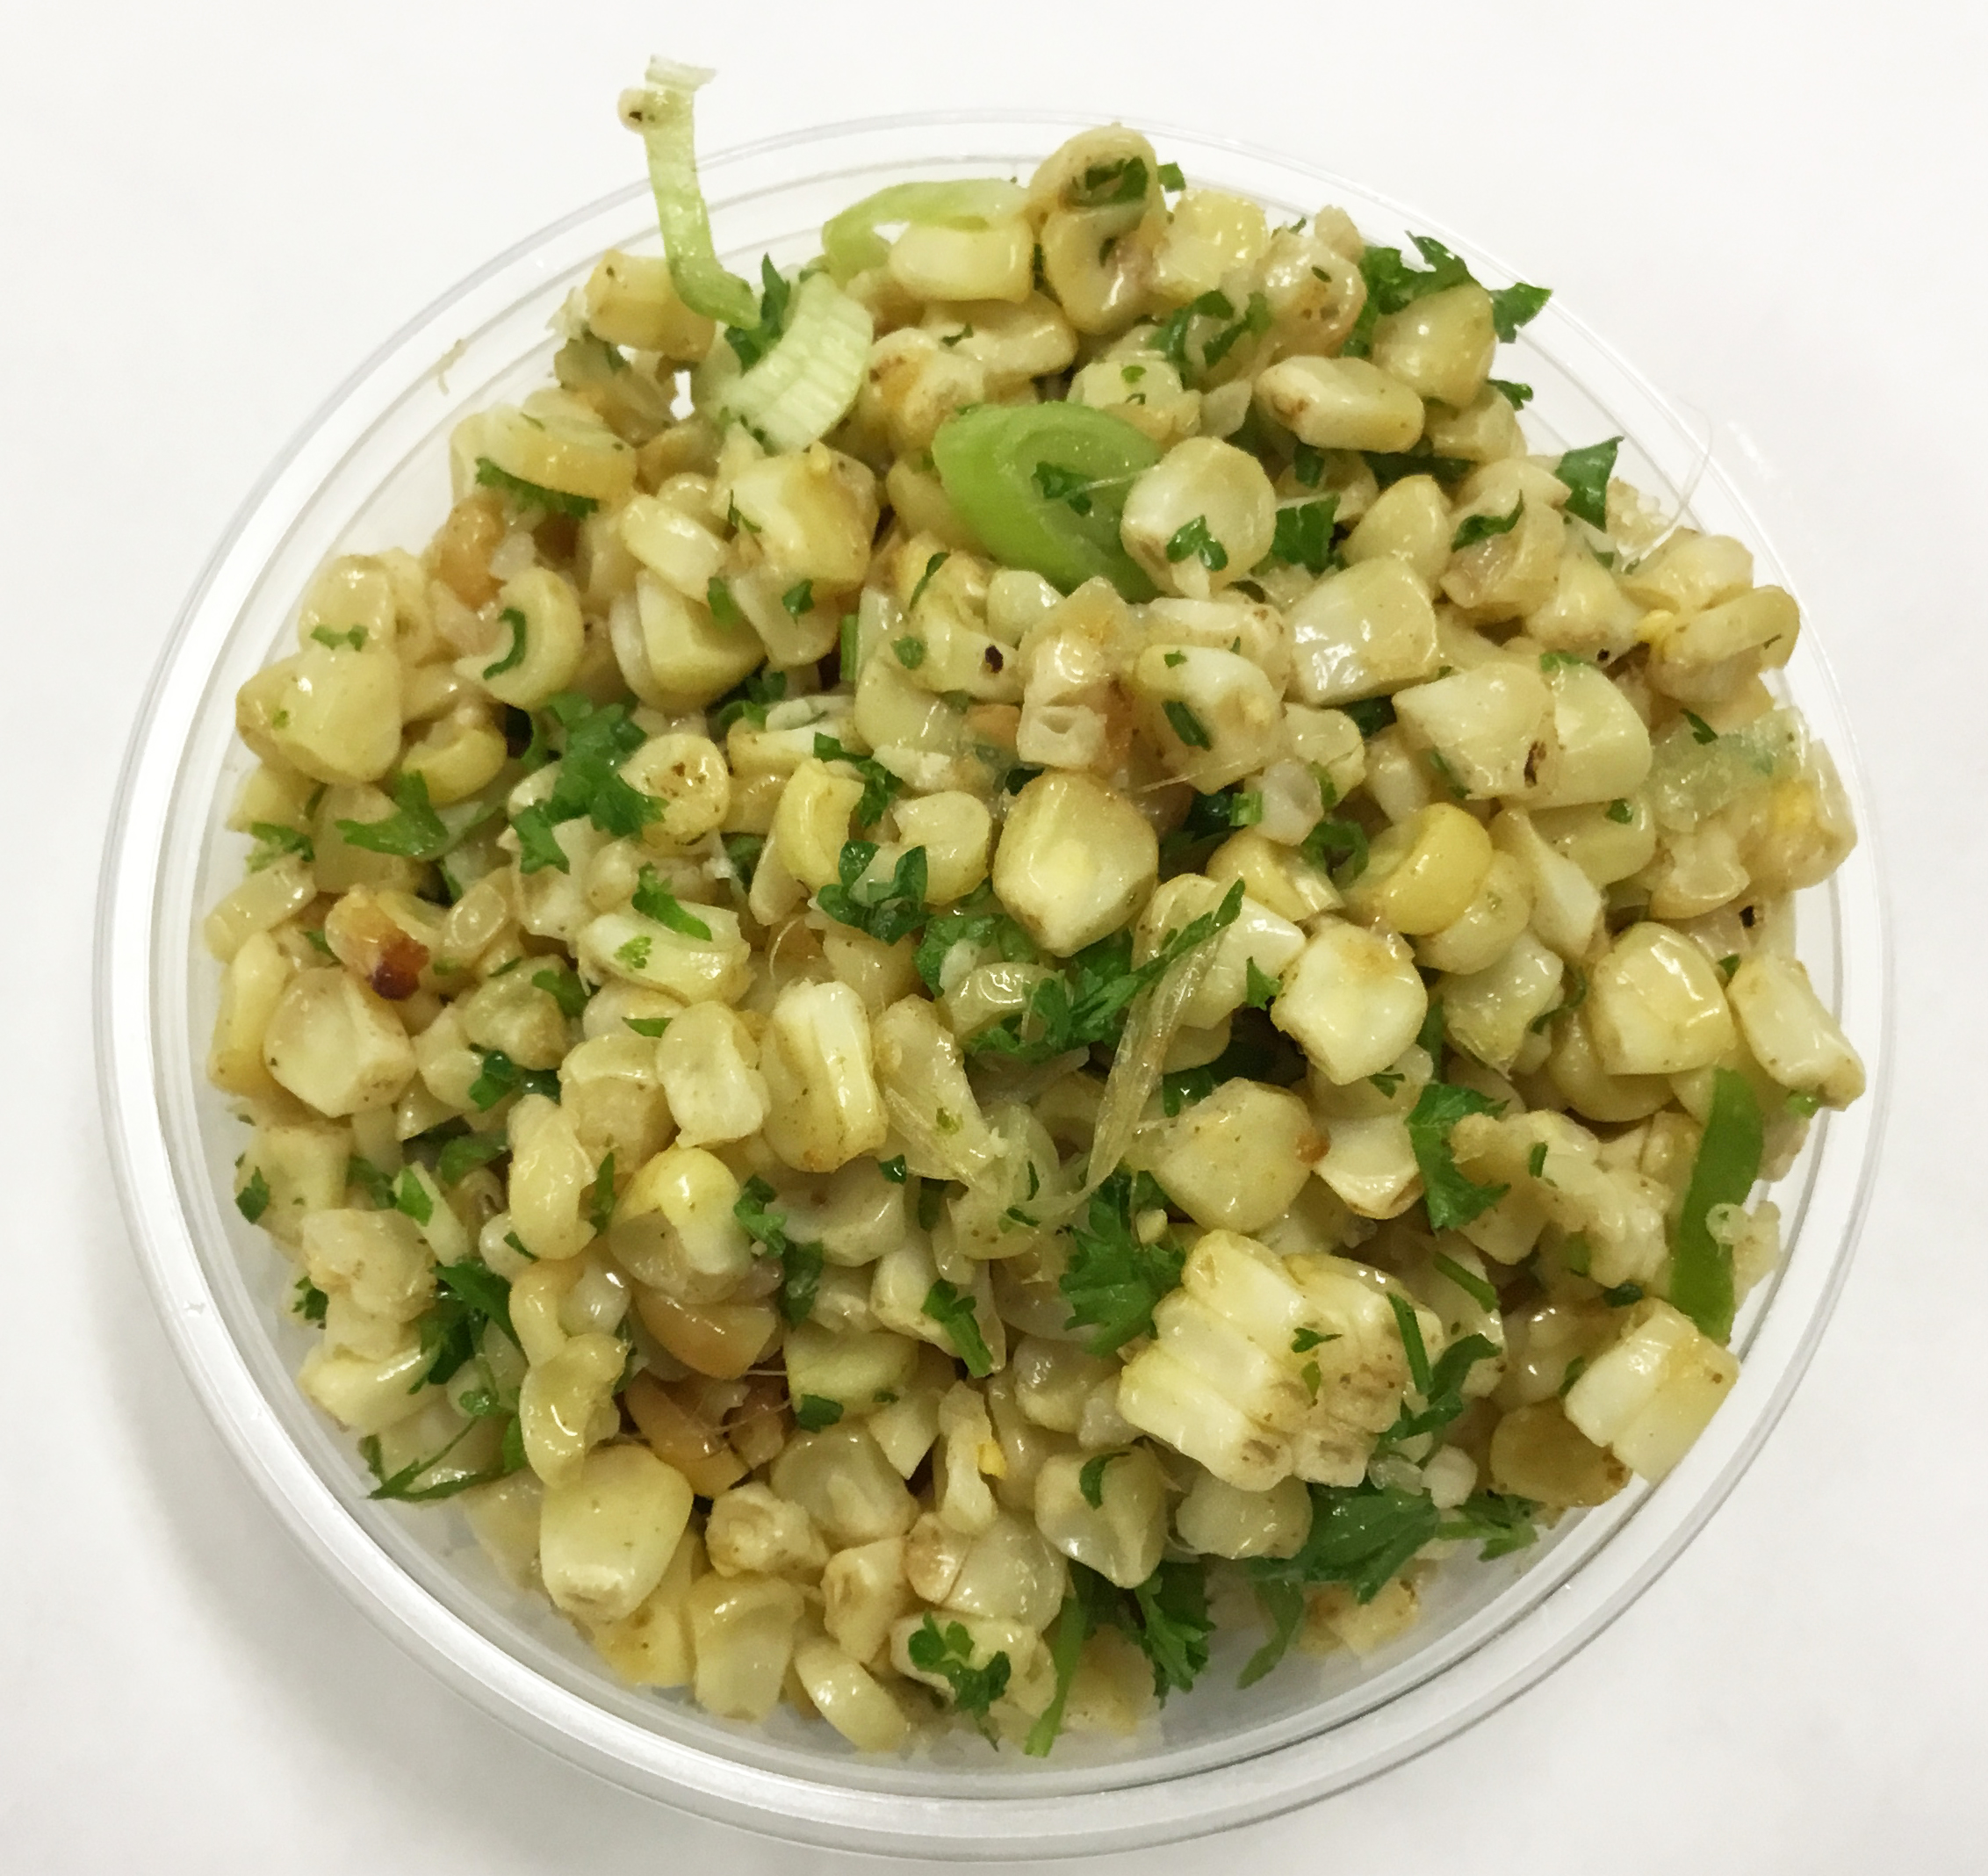 Fresh roasted corn salad with parsley, scallions and garlic.